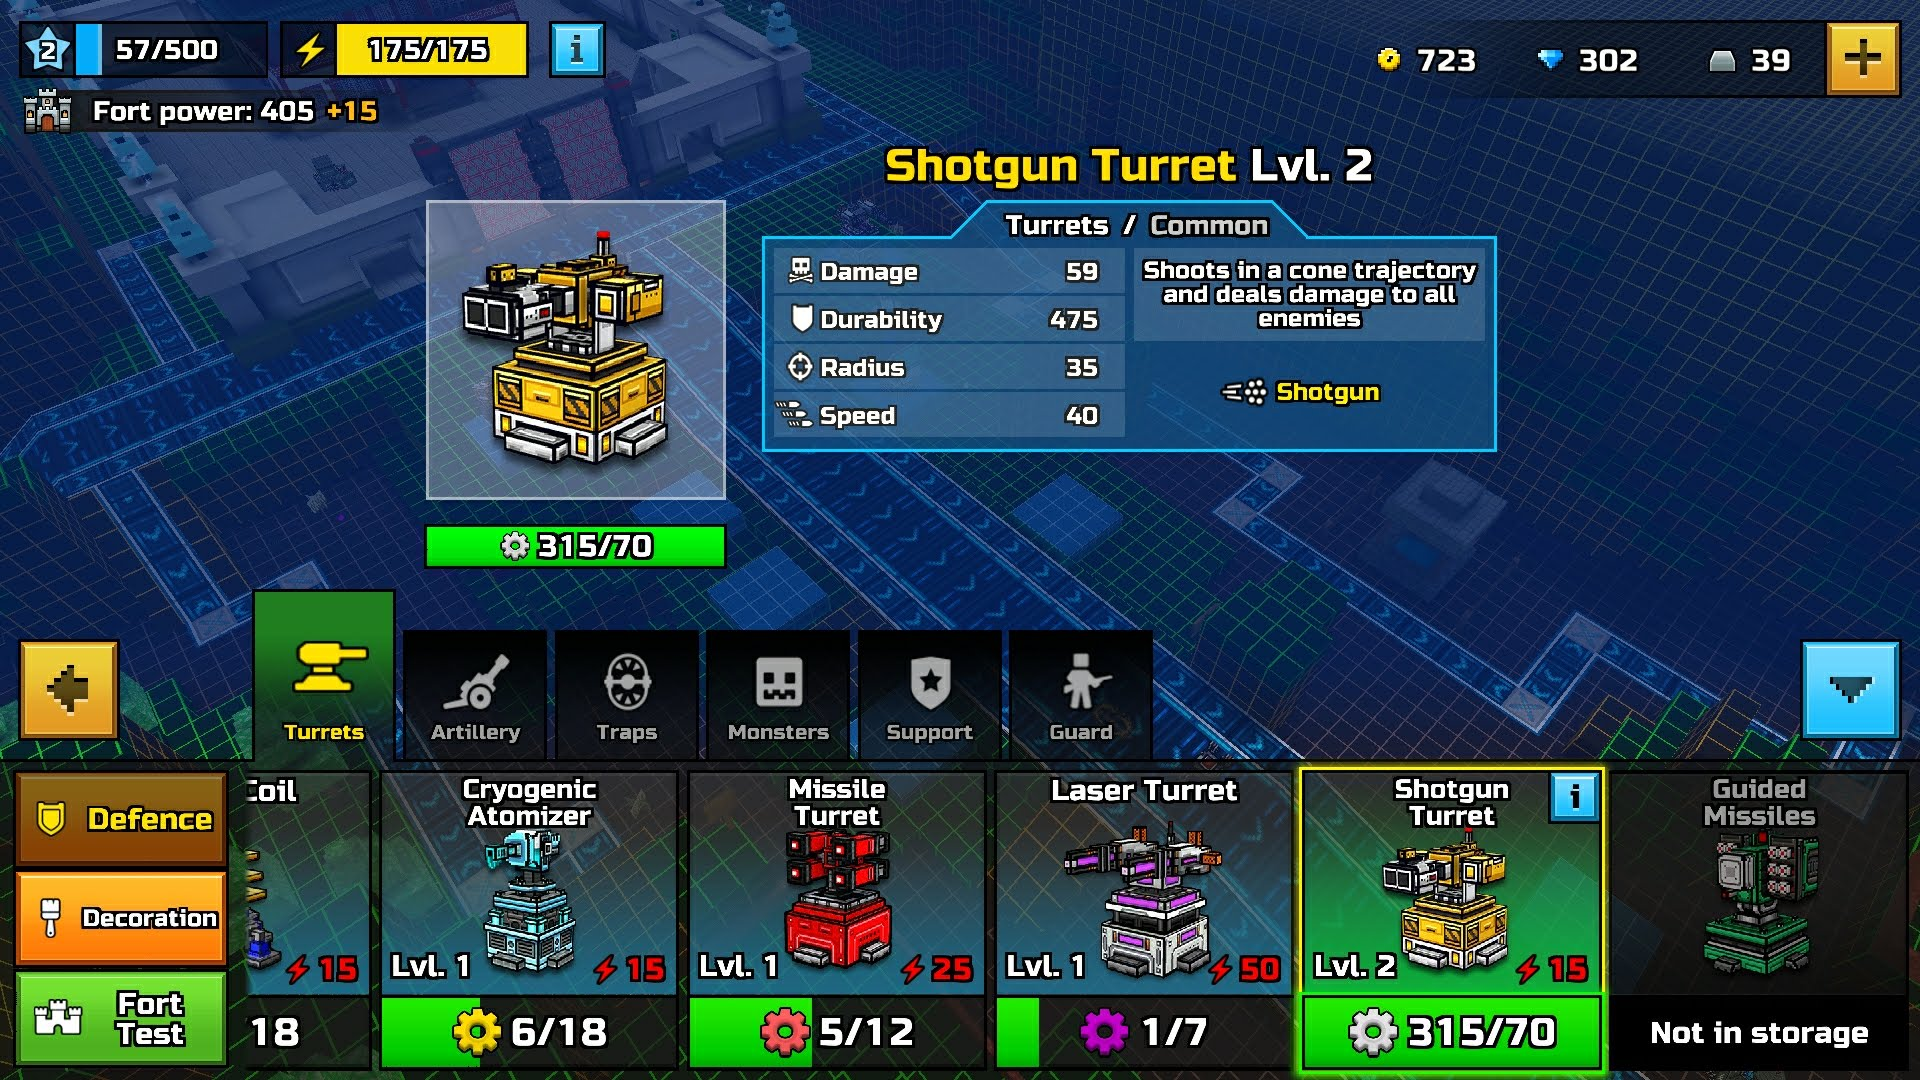 Shotgun Turret